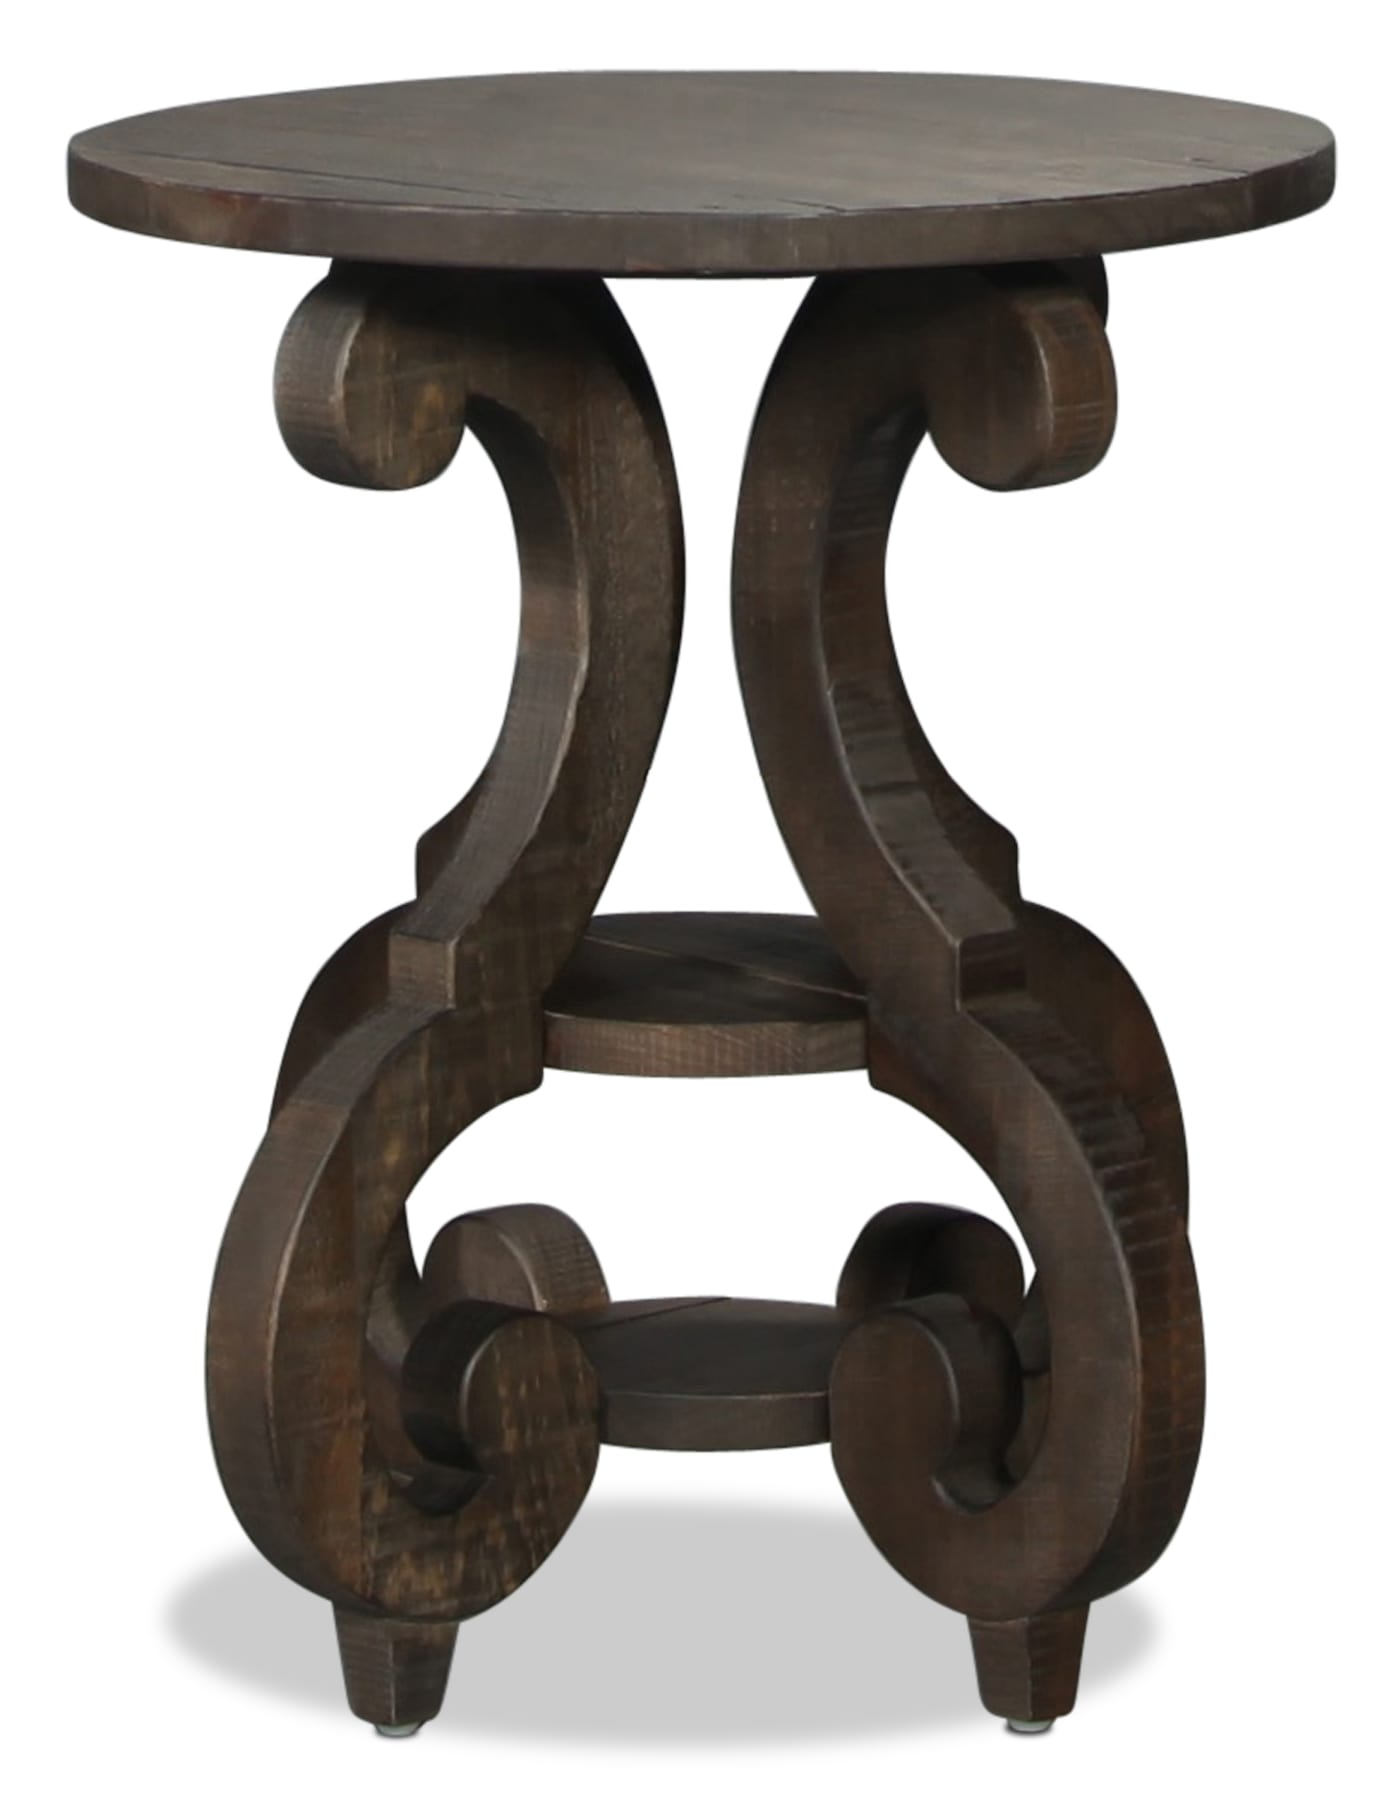 Bellamy Round End Table - Weathered Pine